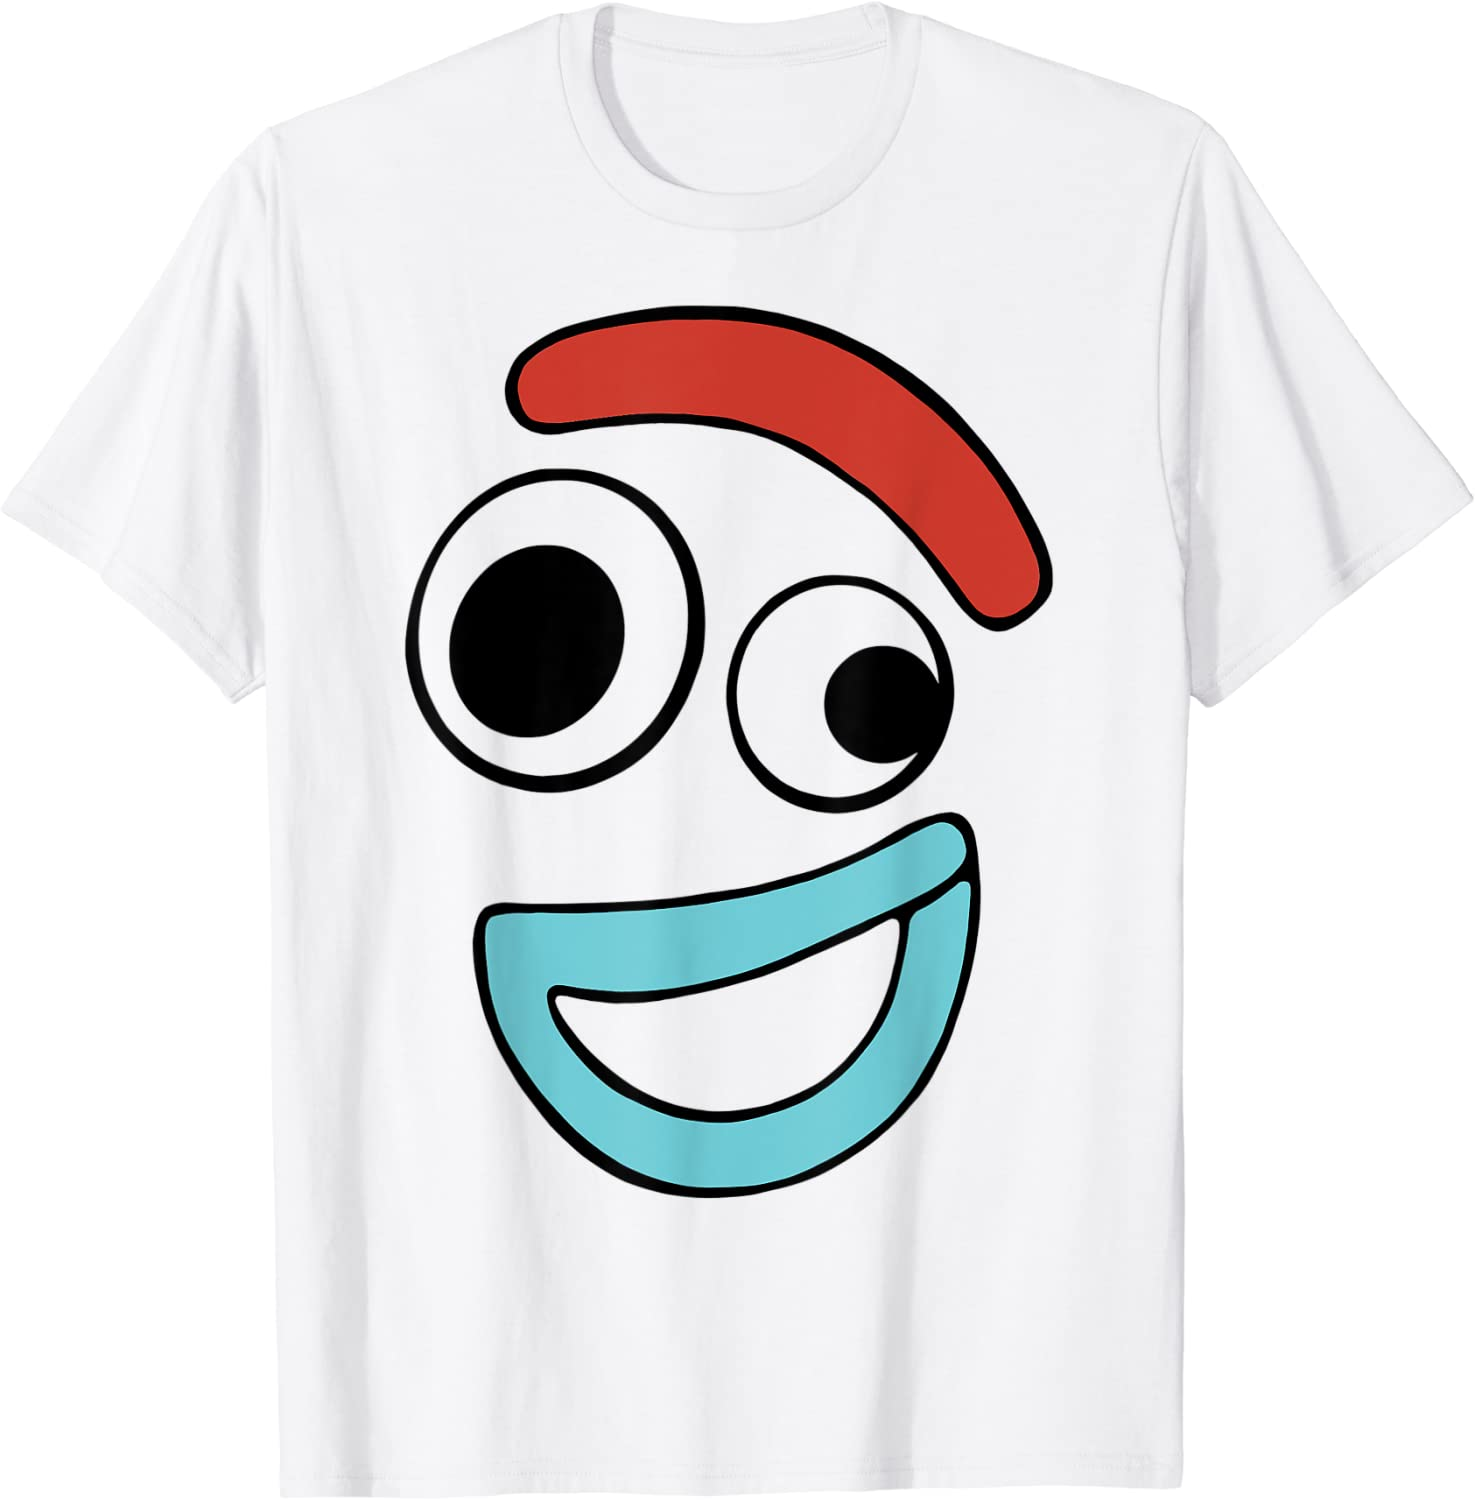 Disney Pixar Toy Story 4 Forky Large Happy Face T-Shirt